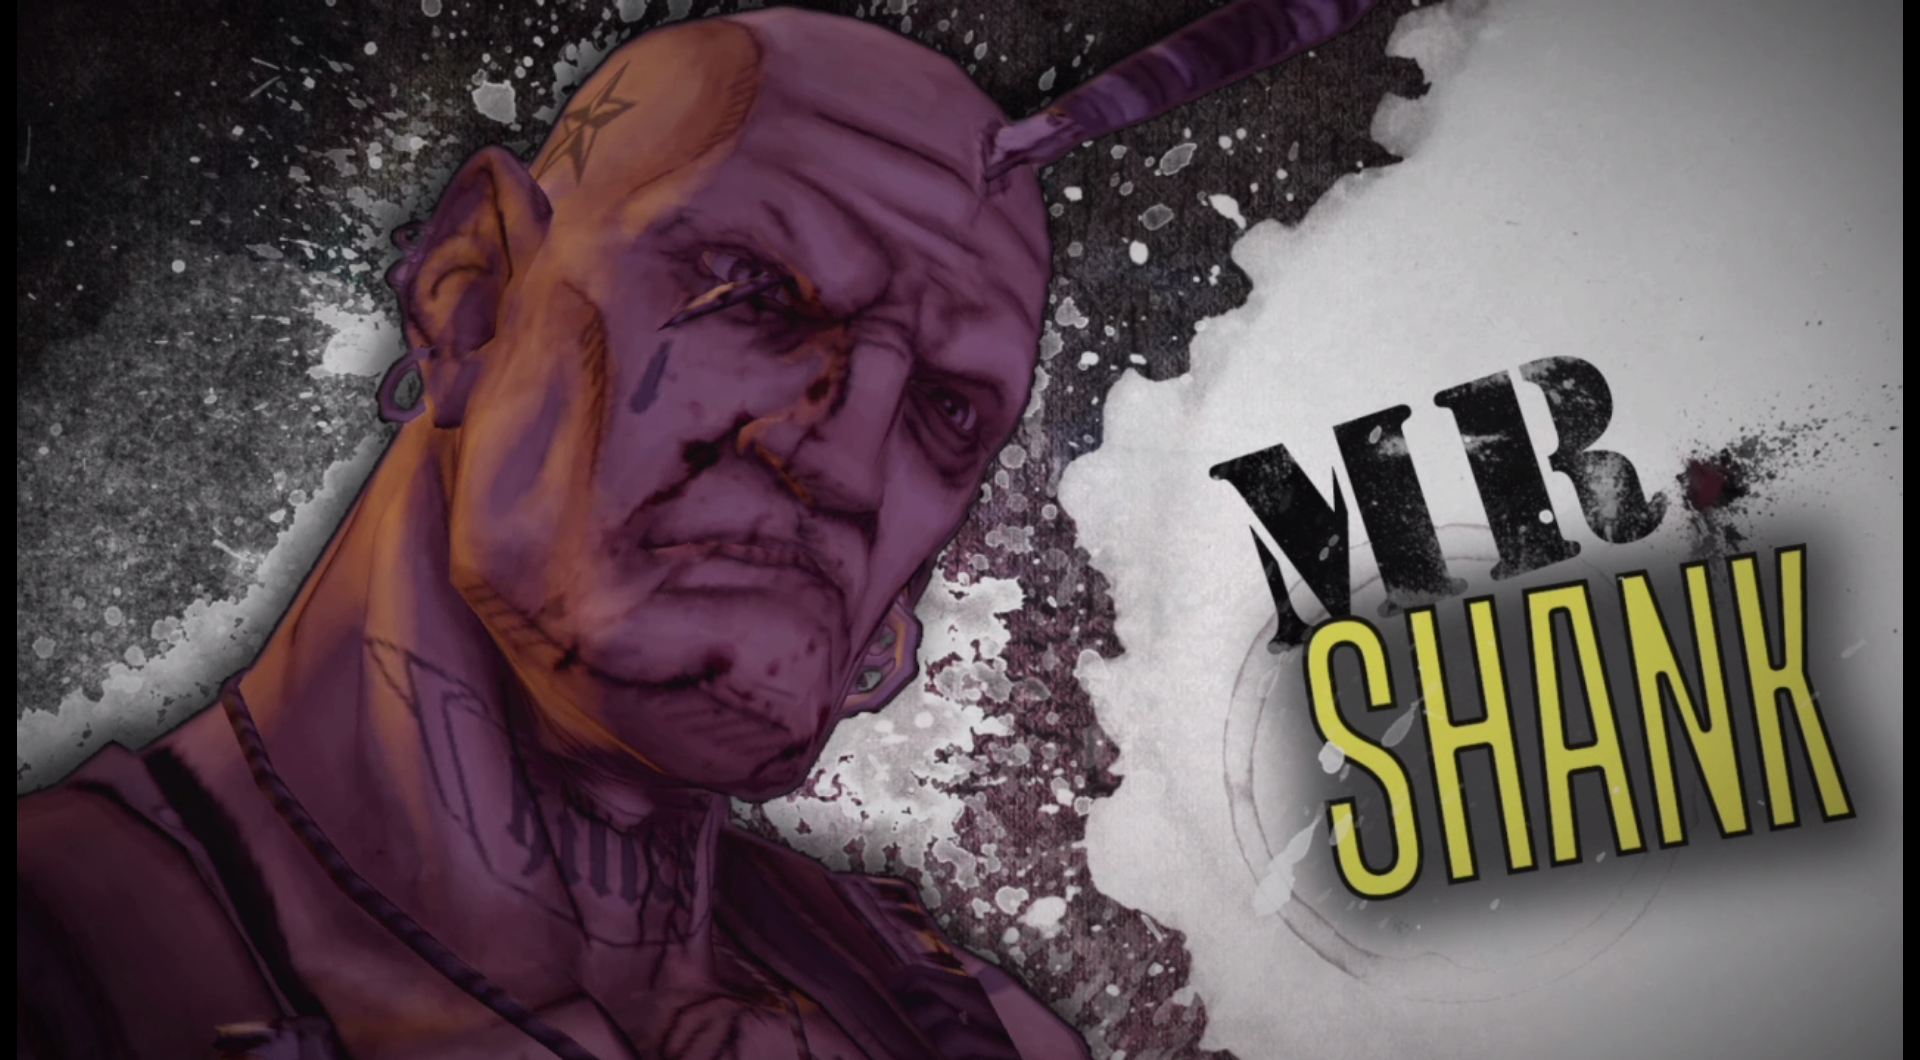 Mr  Shank | Borderlands Wiki | FANDOM powered by Wikia